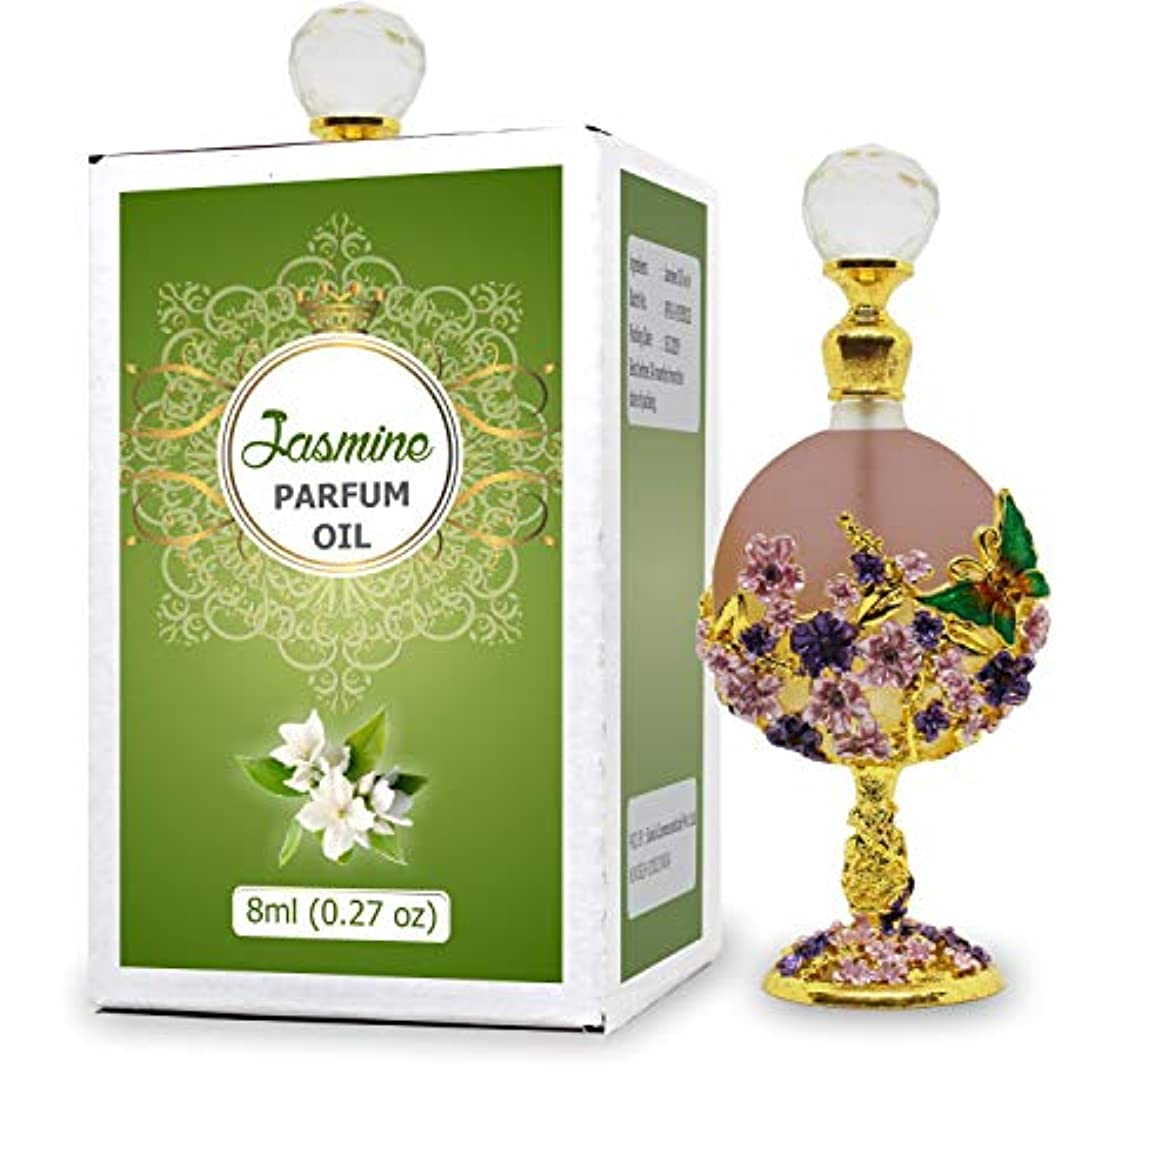 マンモス行き当たりばったりコマースJasmine Parfum Oil - Alcohol Free Perfume Oil - Long Lasting Jasmine Fragrance For Women - 8 ML